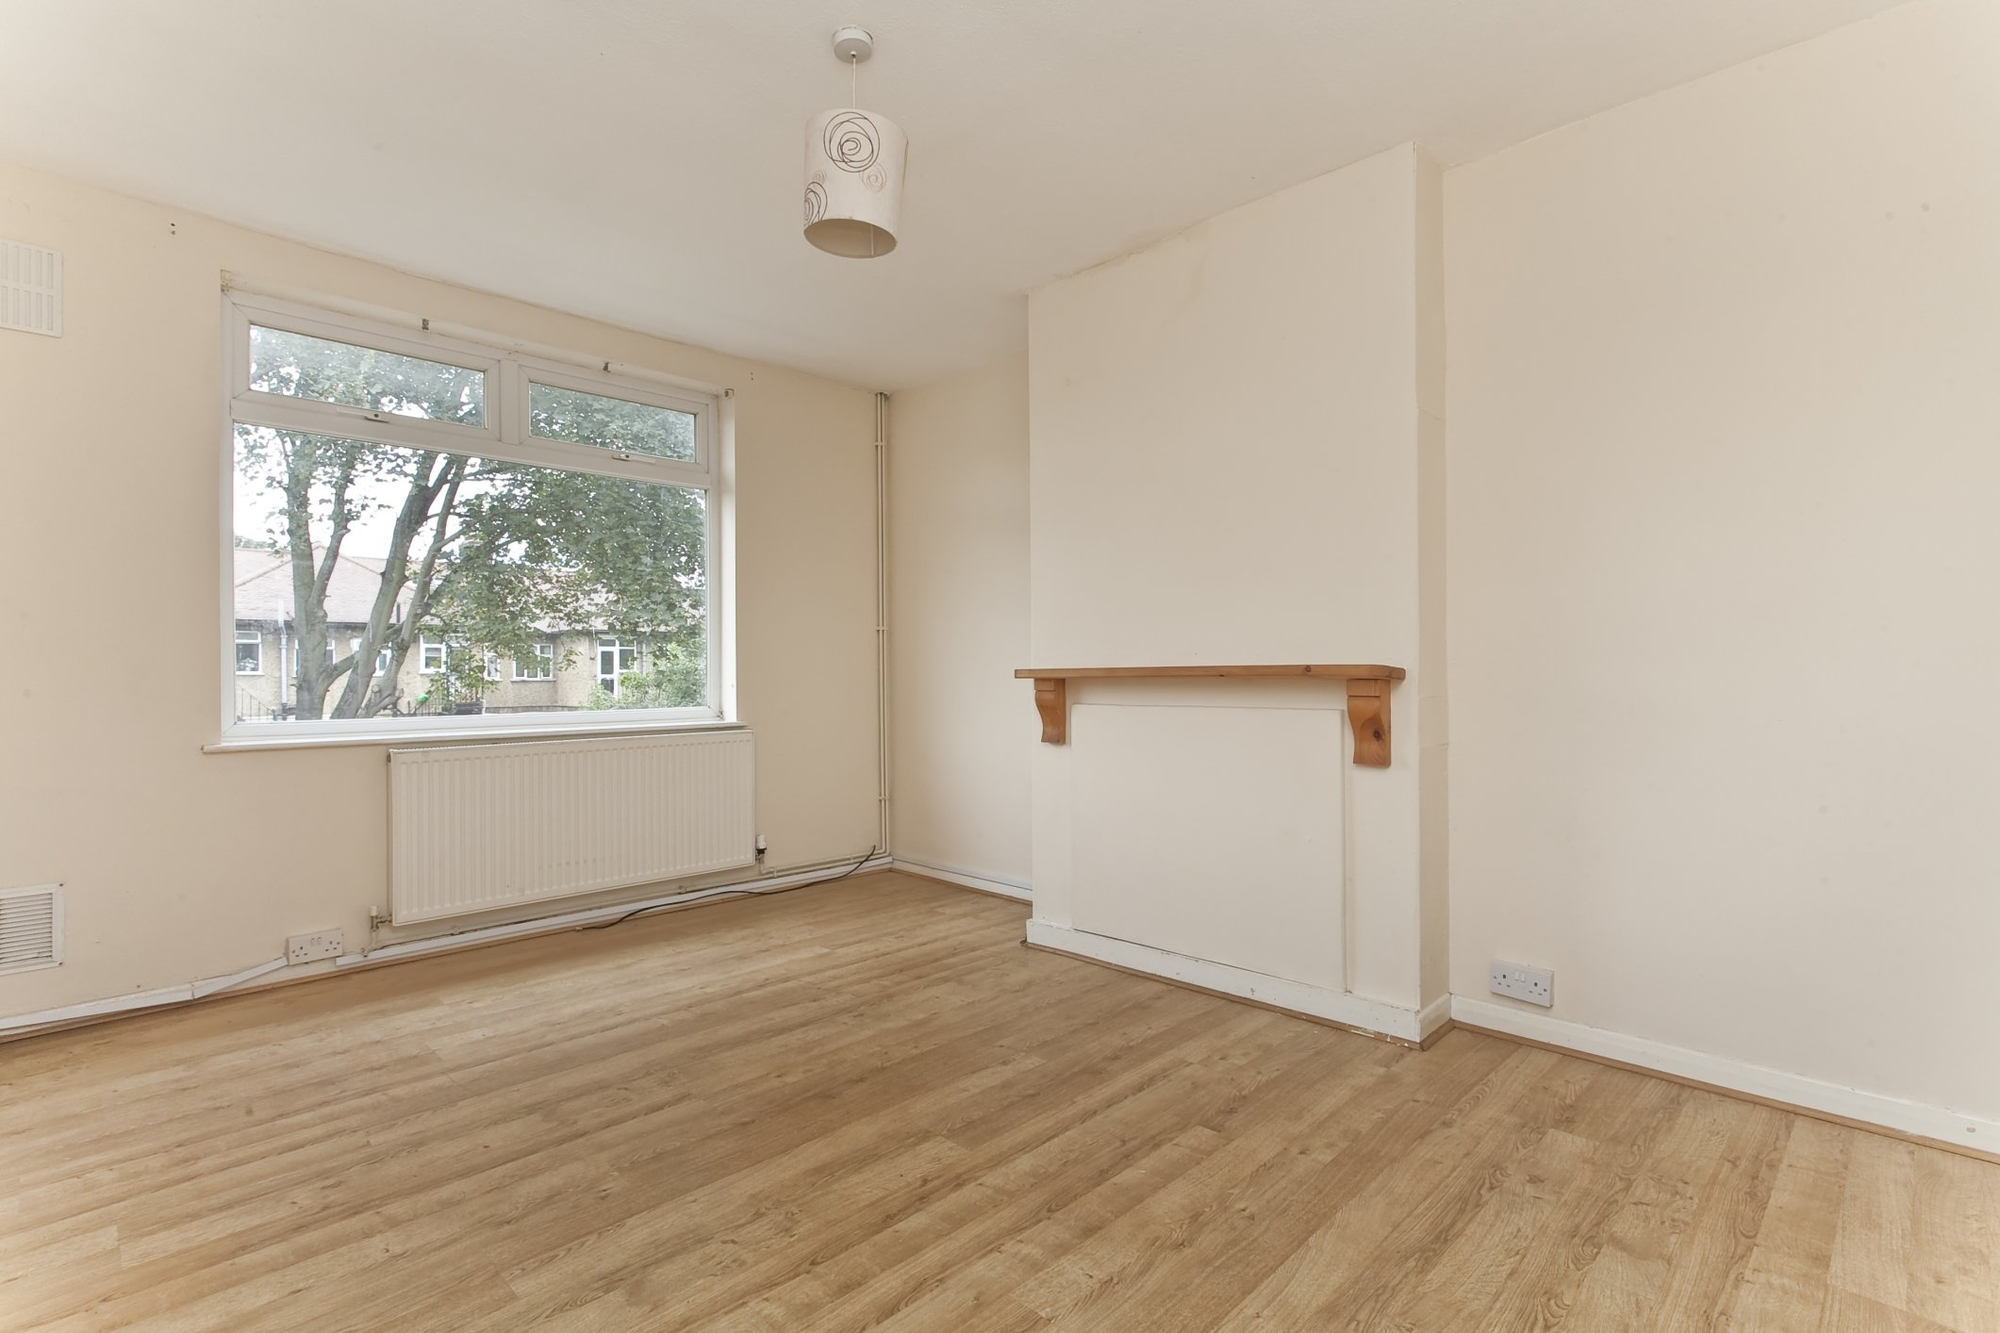 House in Kitchener Road - Walthamstow, E17 (2 Bed) | ludlowthompson